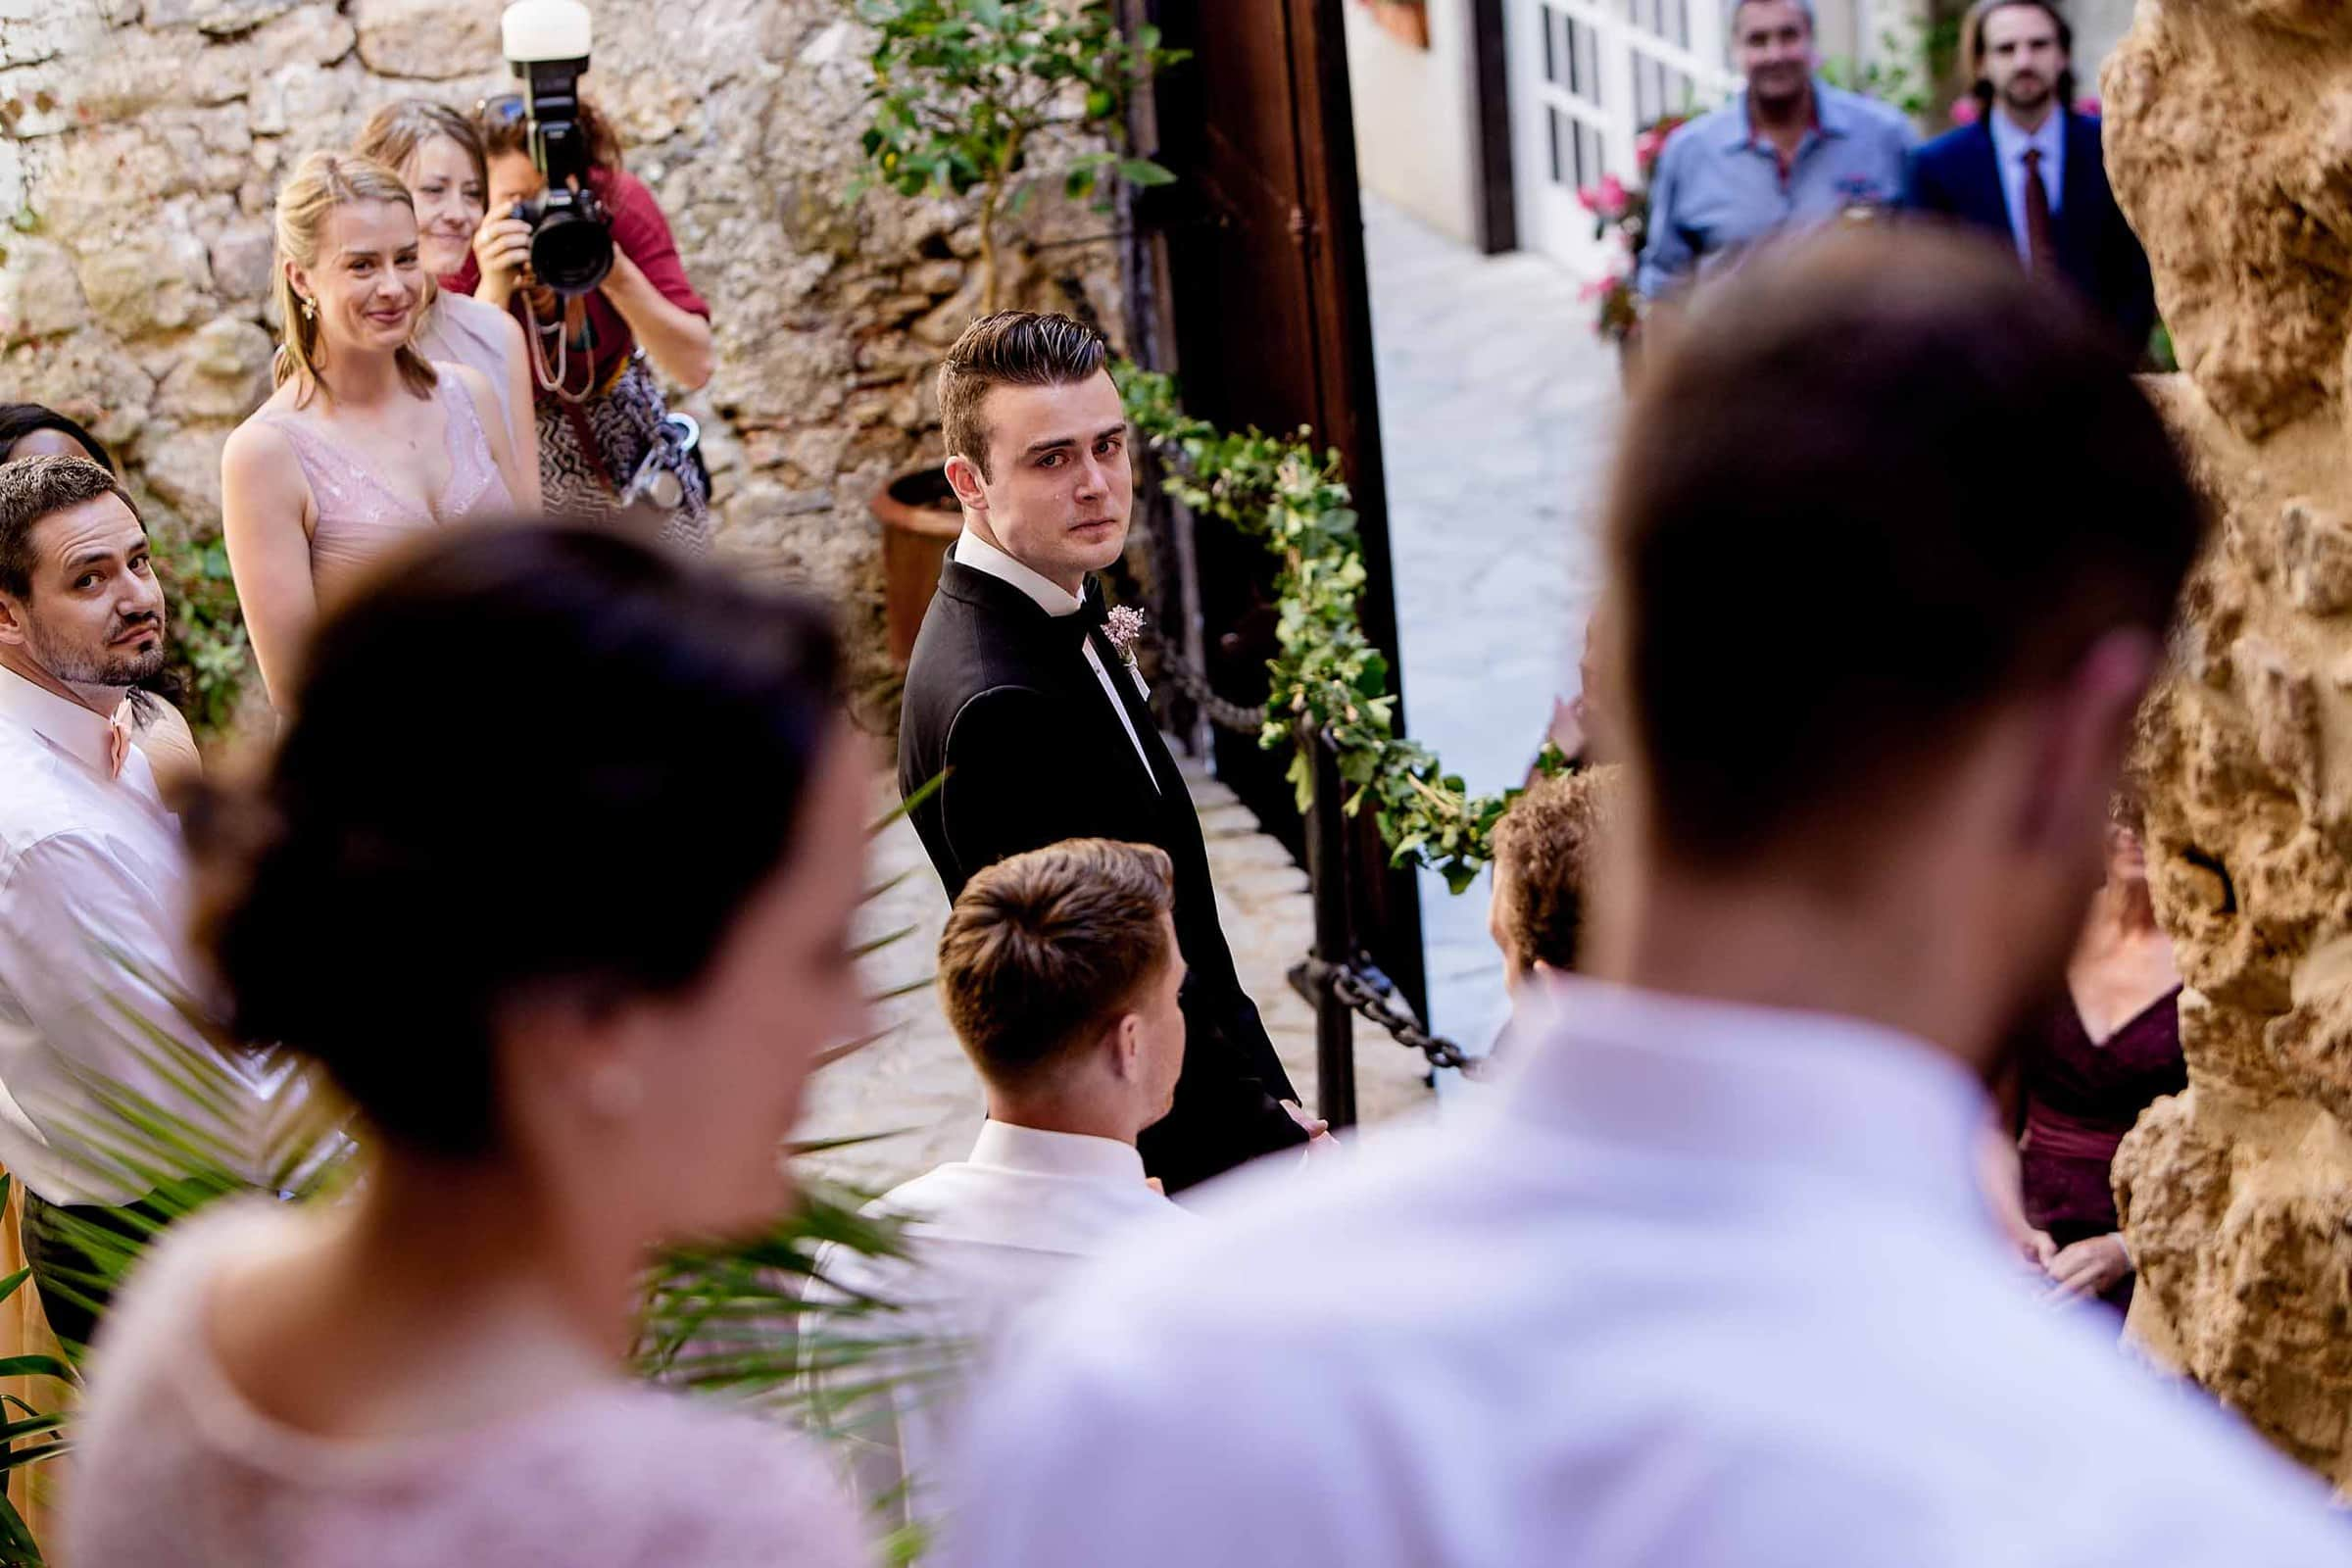 Emotional groom seeing bride for the first time during a Chateau Zen wedding ceremony in the South of France near Montepelier.